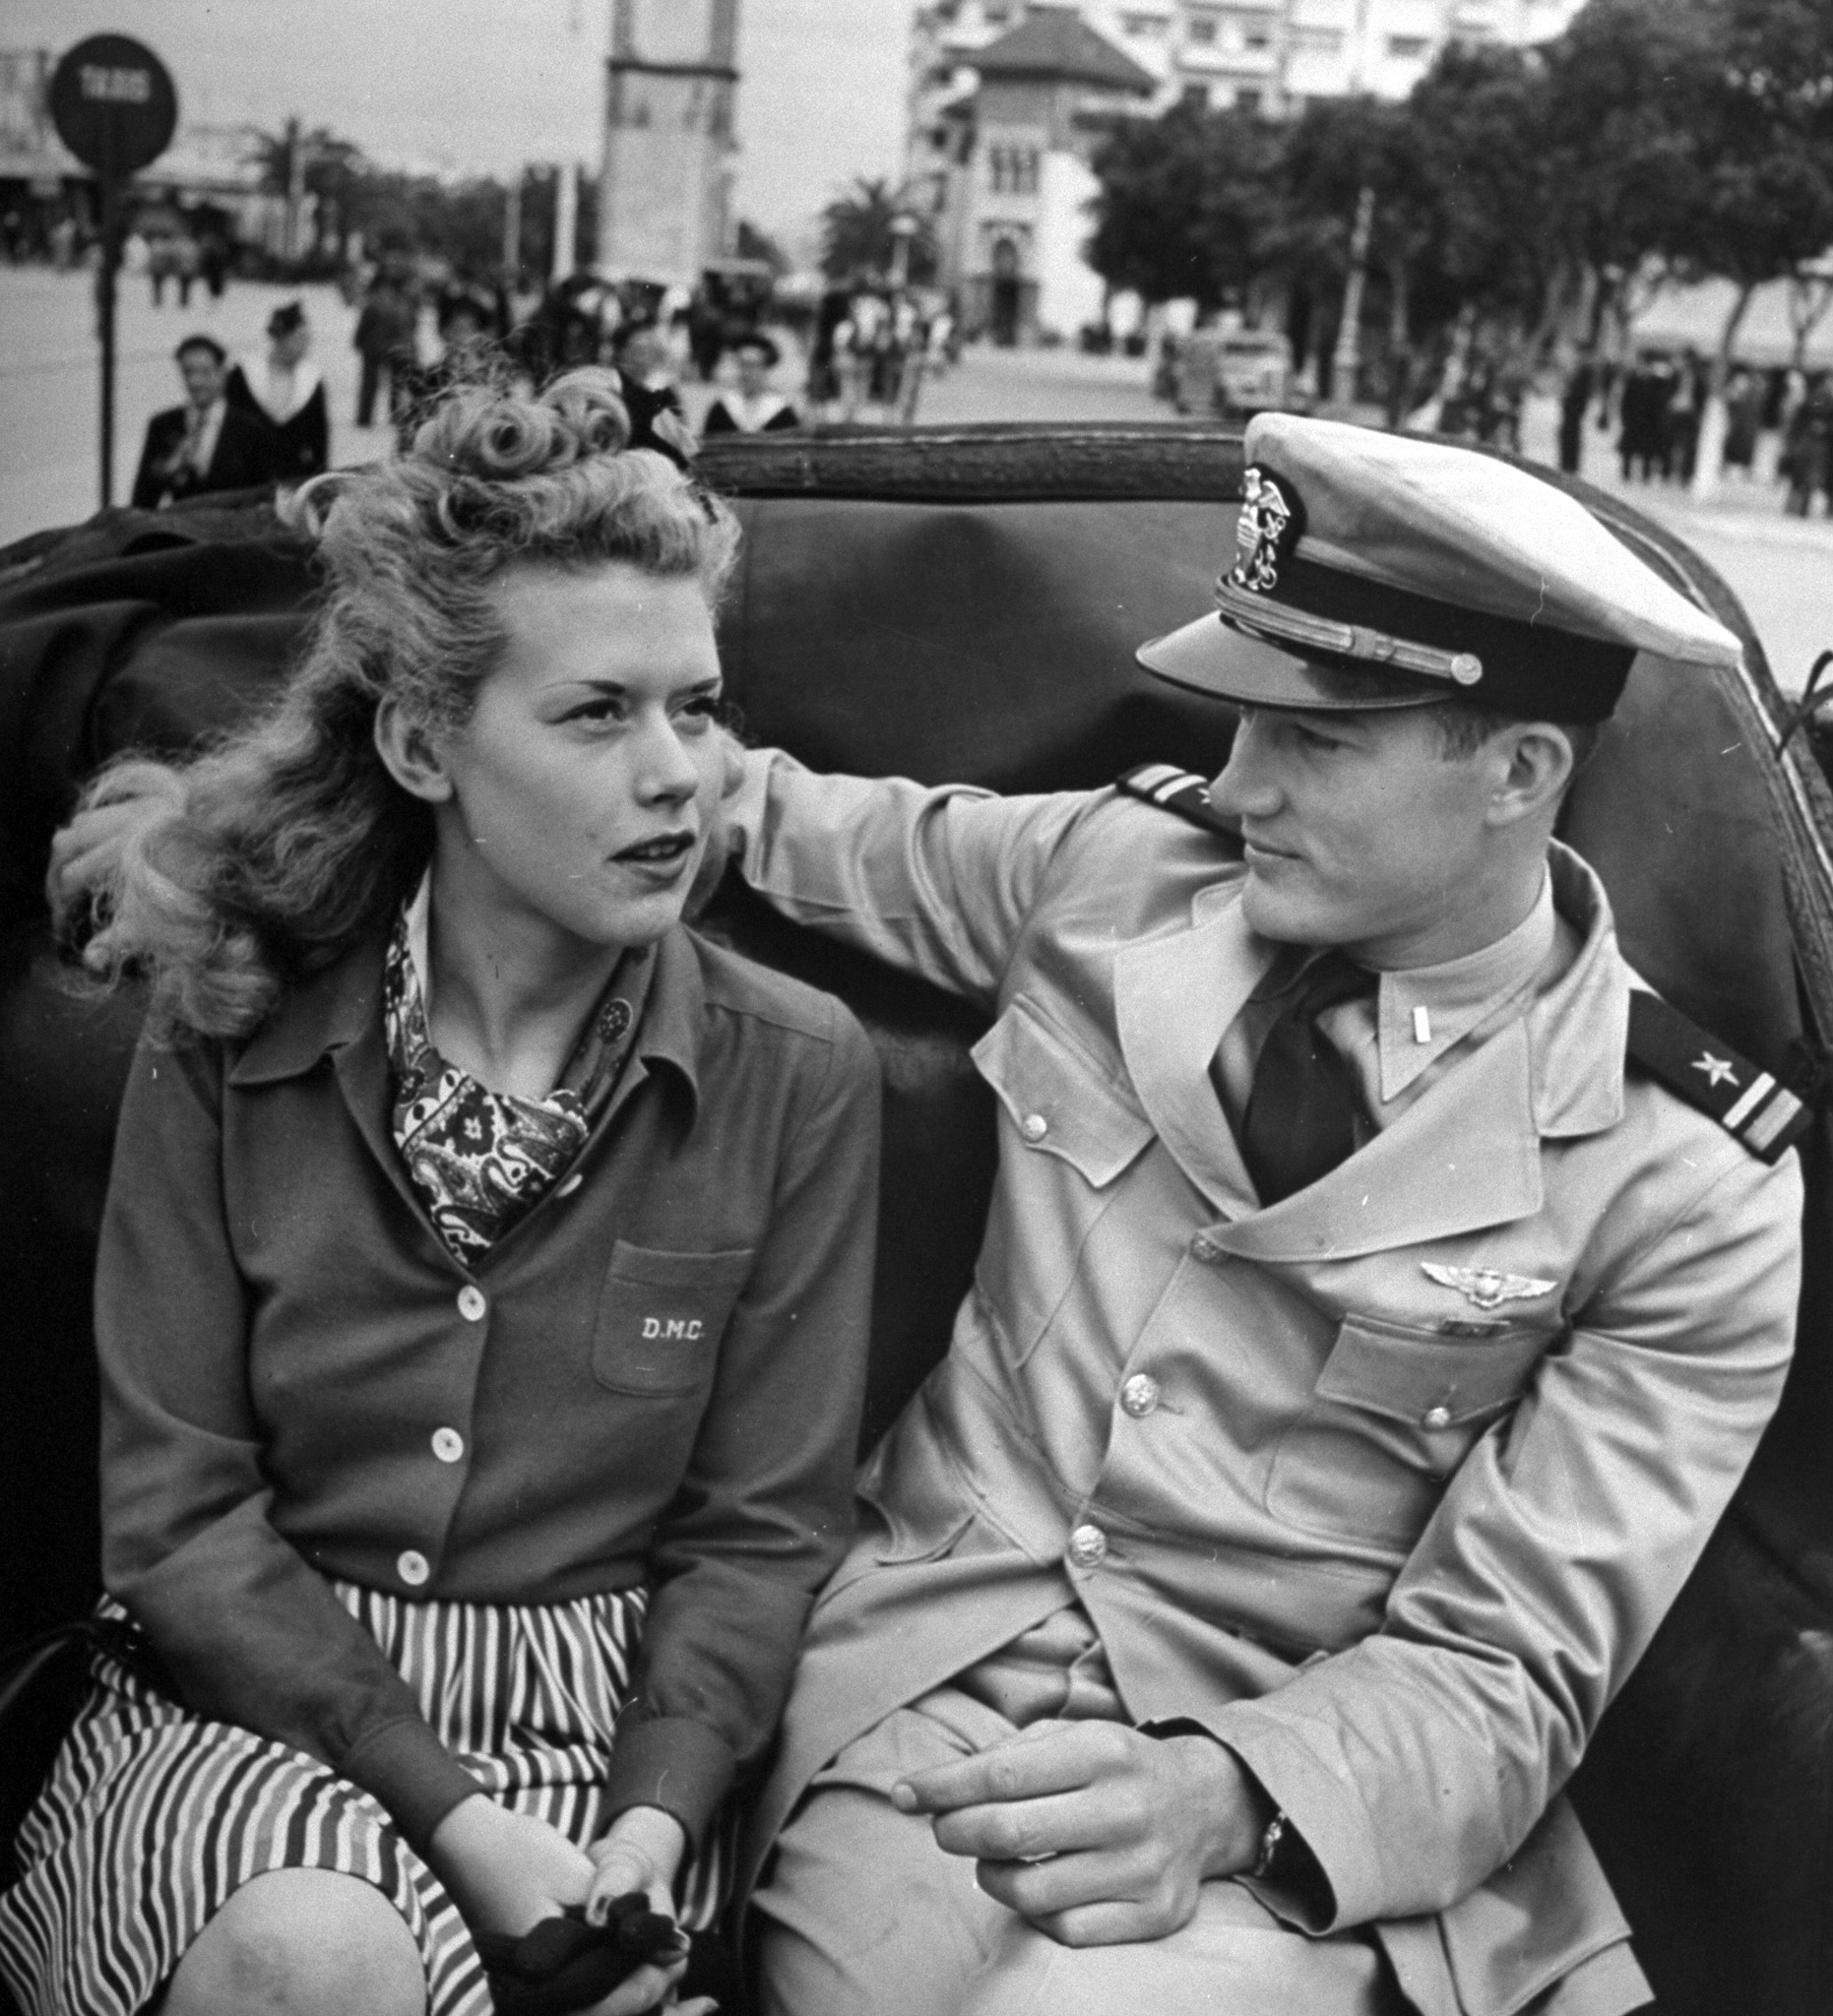 Caption from LIFE. Finding a pretty, clever girl in Casablanca was the feat of a U.S. Navy flier named Jim and he made the most of it.